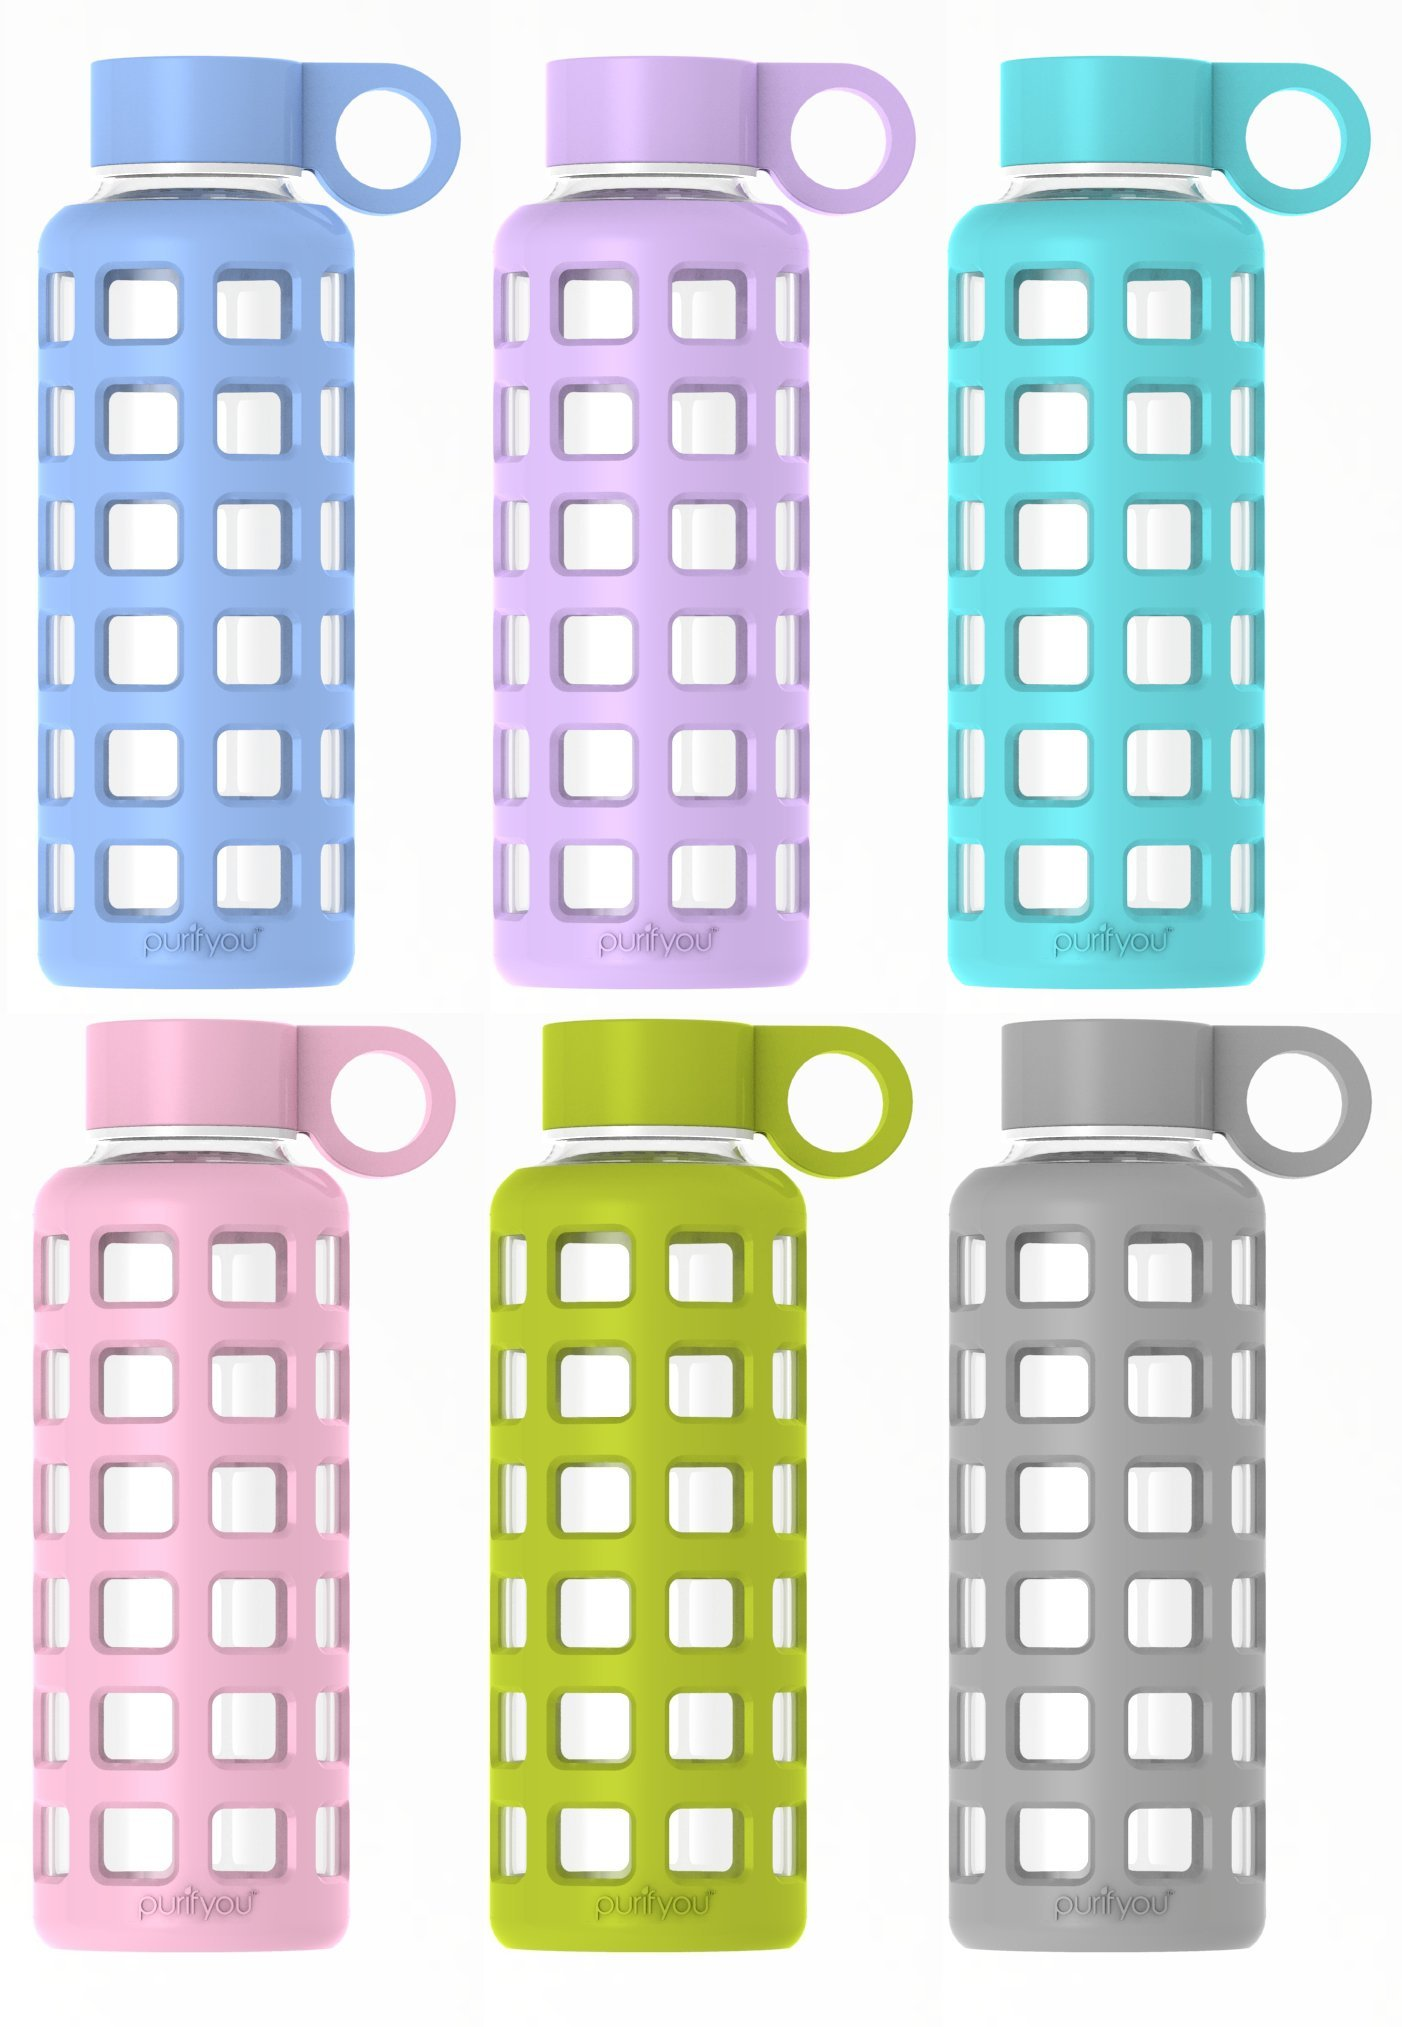 purifyou Premium Glass Water Bottle with Silicone Sleeve and Stainless Steel Lid, 12 / 22 / 32 oz (6 Pack, 22 oz)